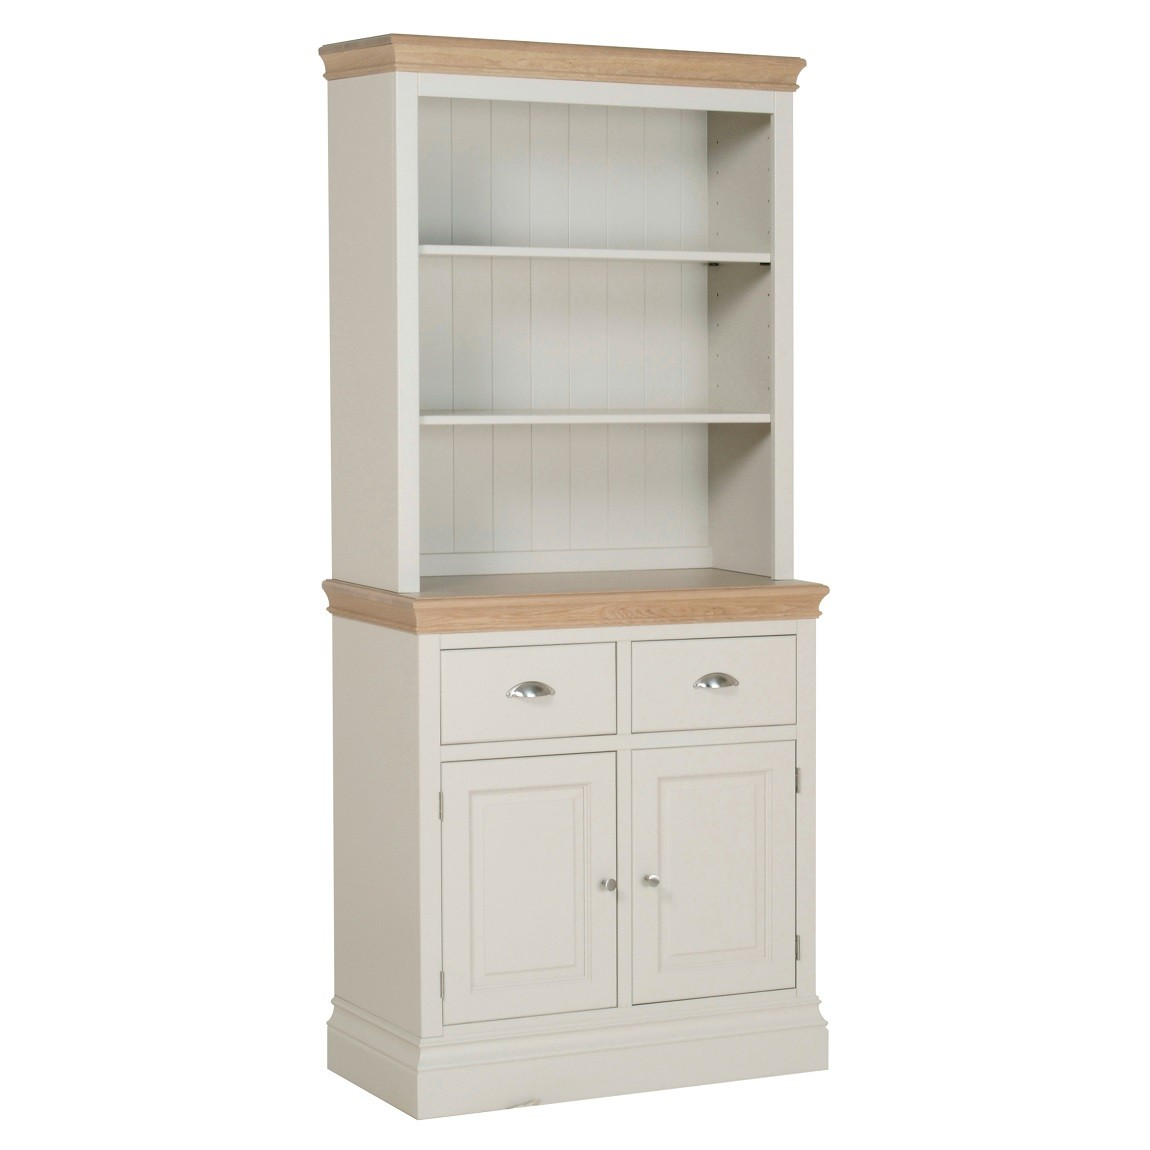 Luxury ... Small Open Top Welsh Dresser. Add to Wishlist small welsh dresser